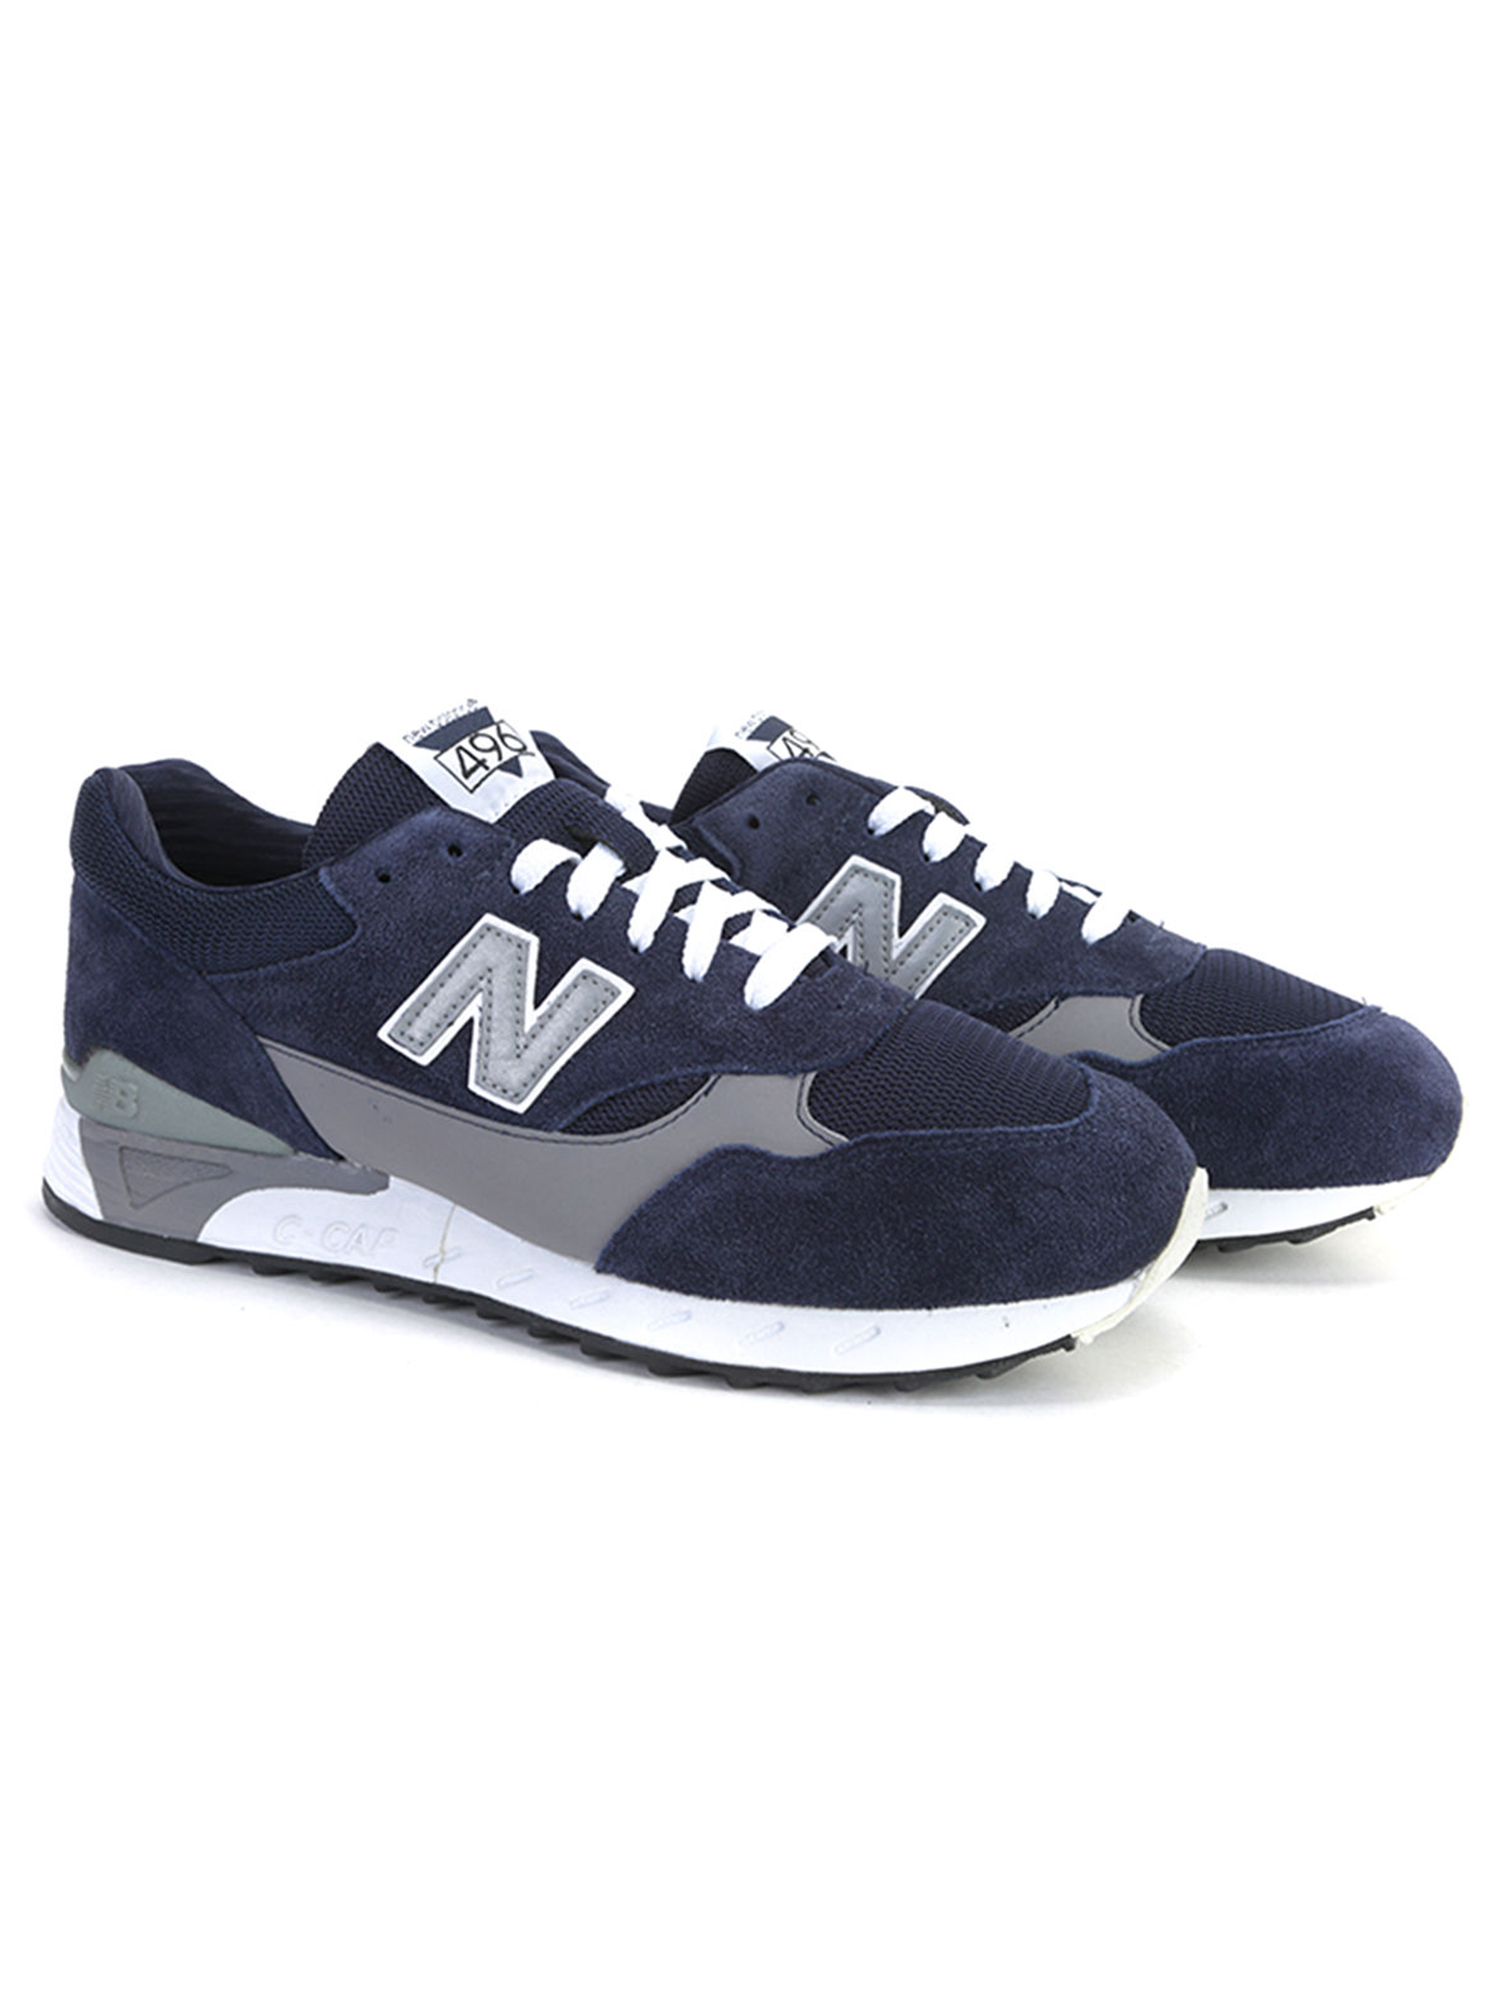 New Balance Men's 496 Series Running Shoes CM496NVY Navy by